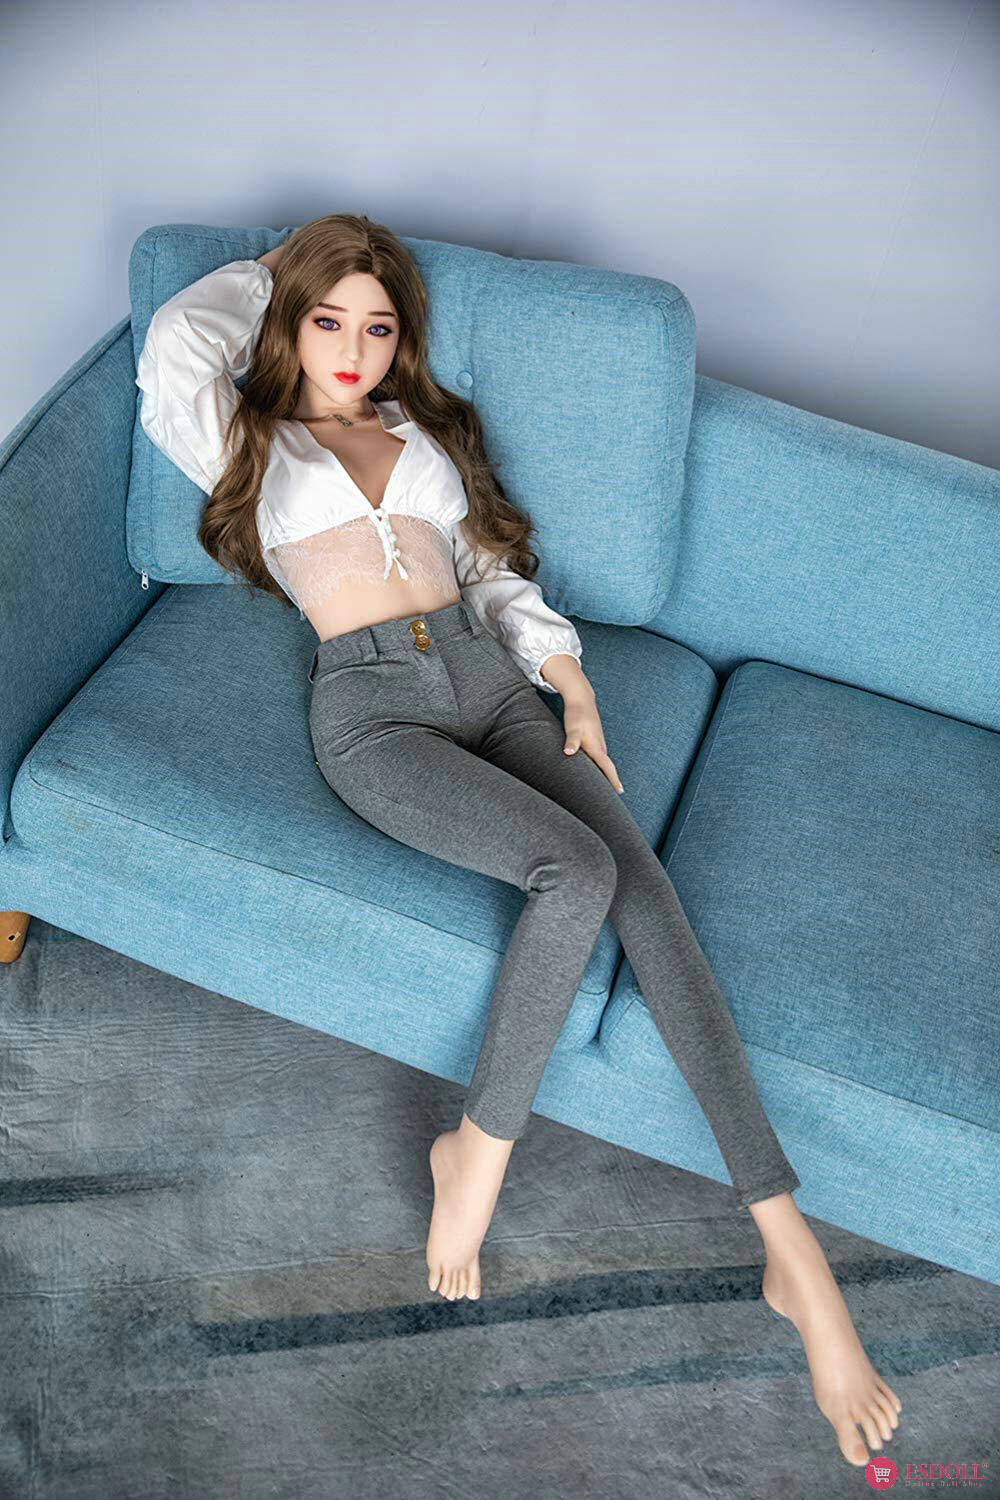 ESDoll-160cm-Sex-Doll-Suitable-Lifelike-Silicone-TPE-Love-Doll (7)